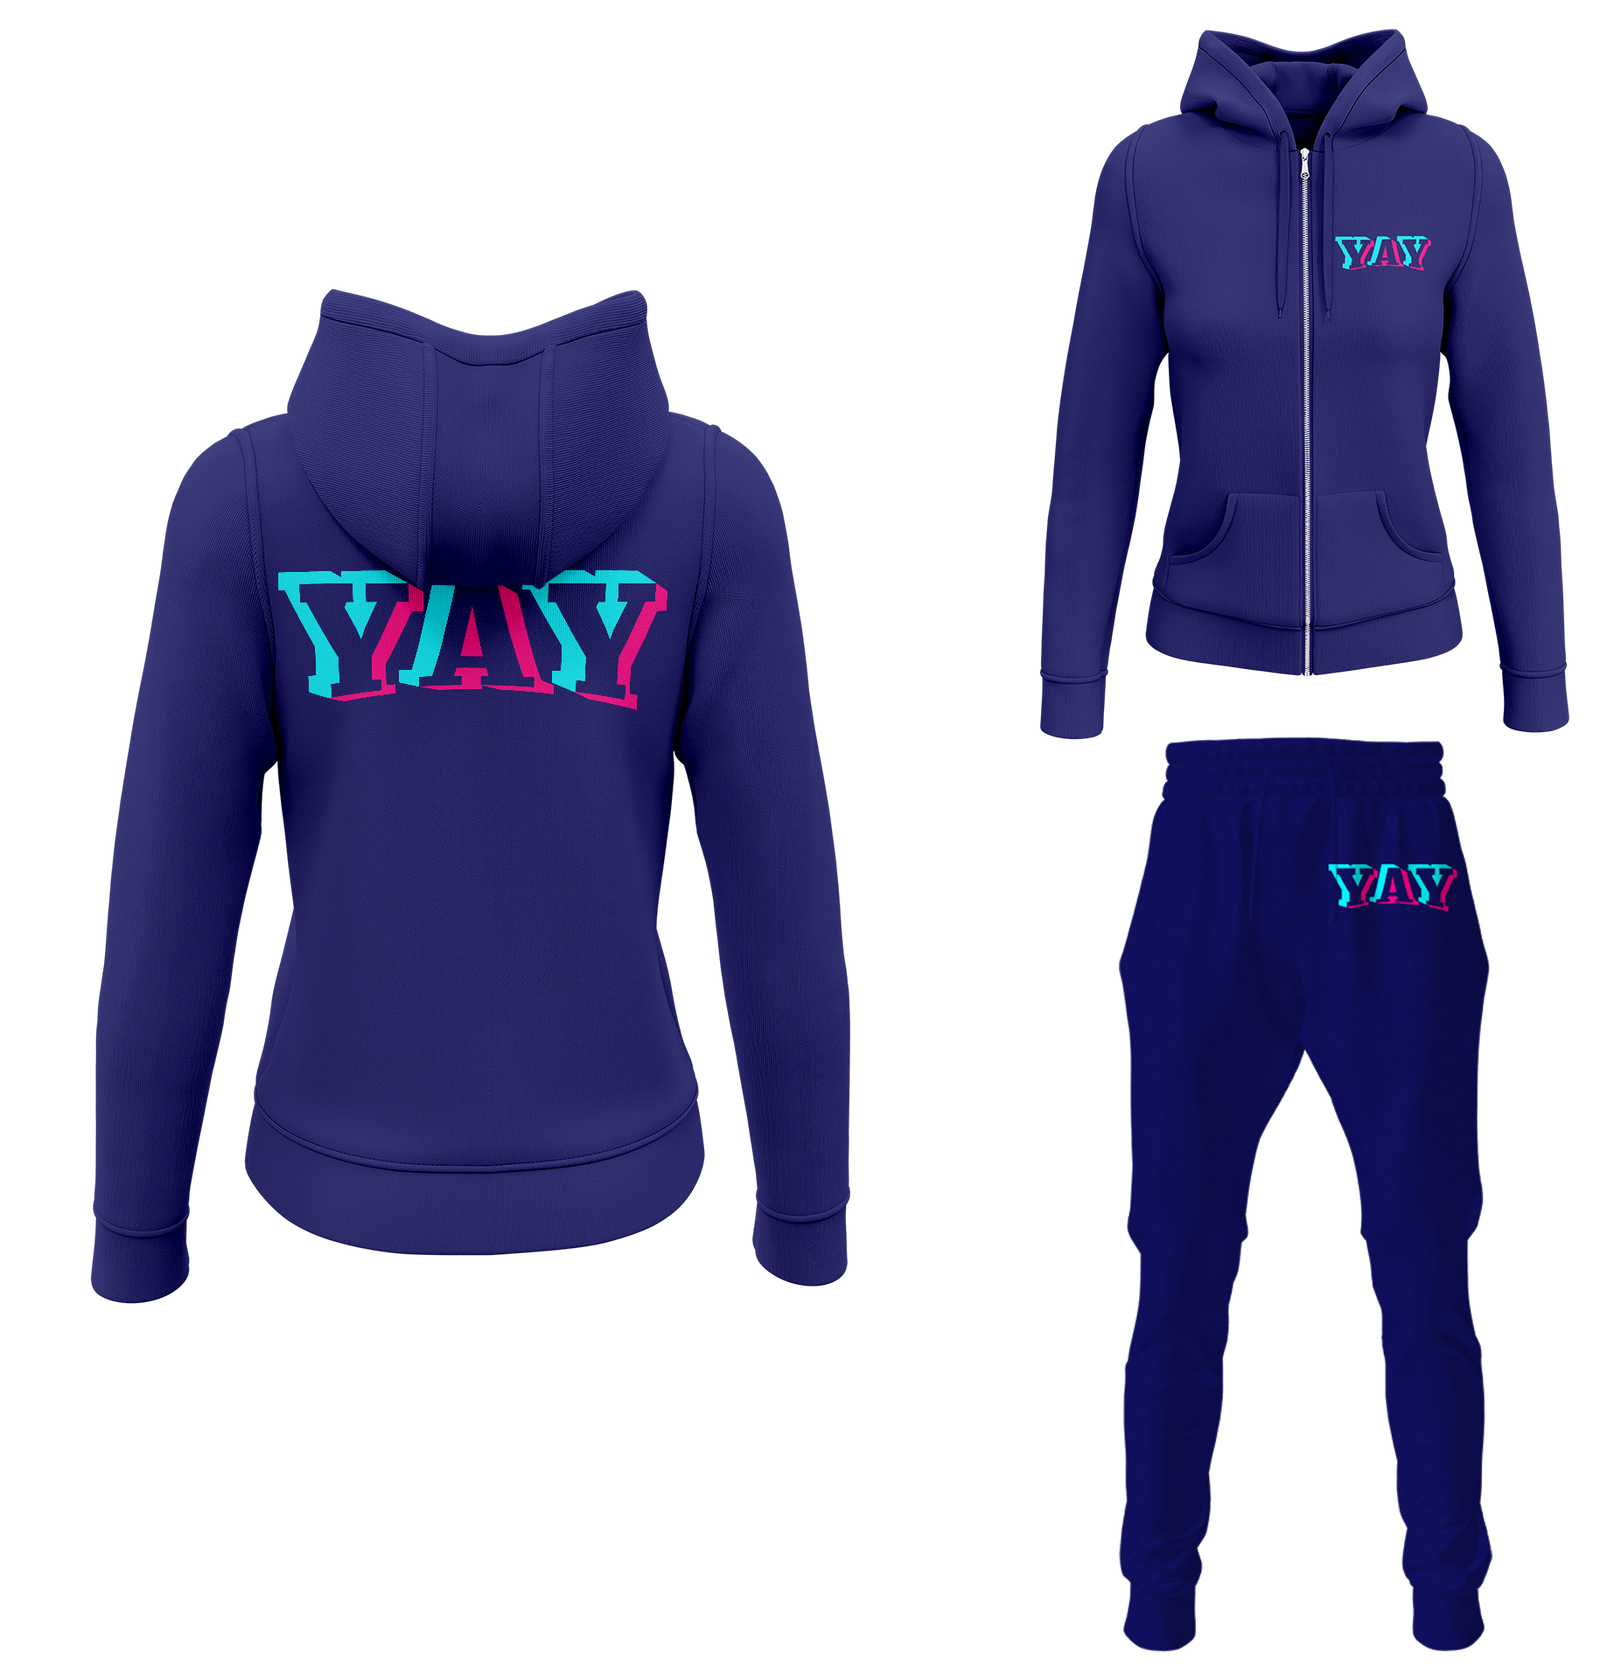 Women's Glitch Yay Zipped Sweatsuits